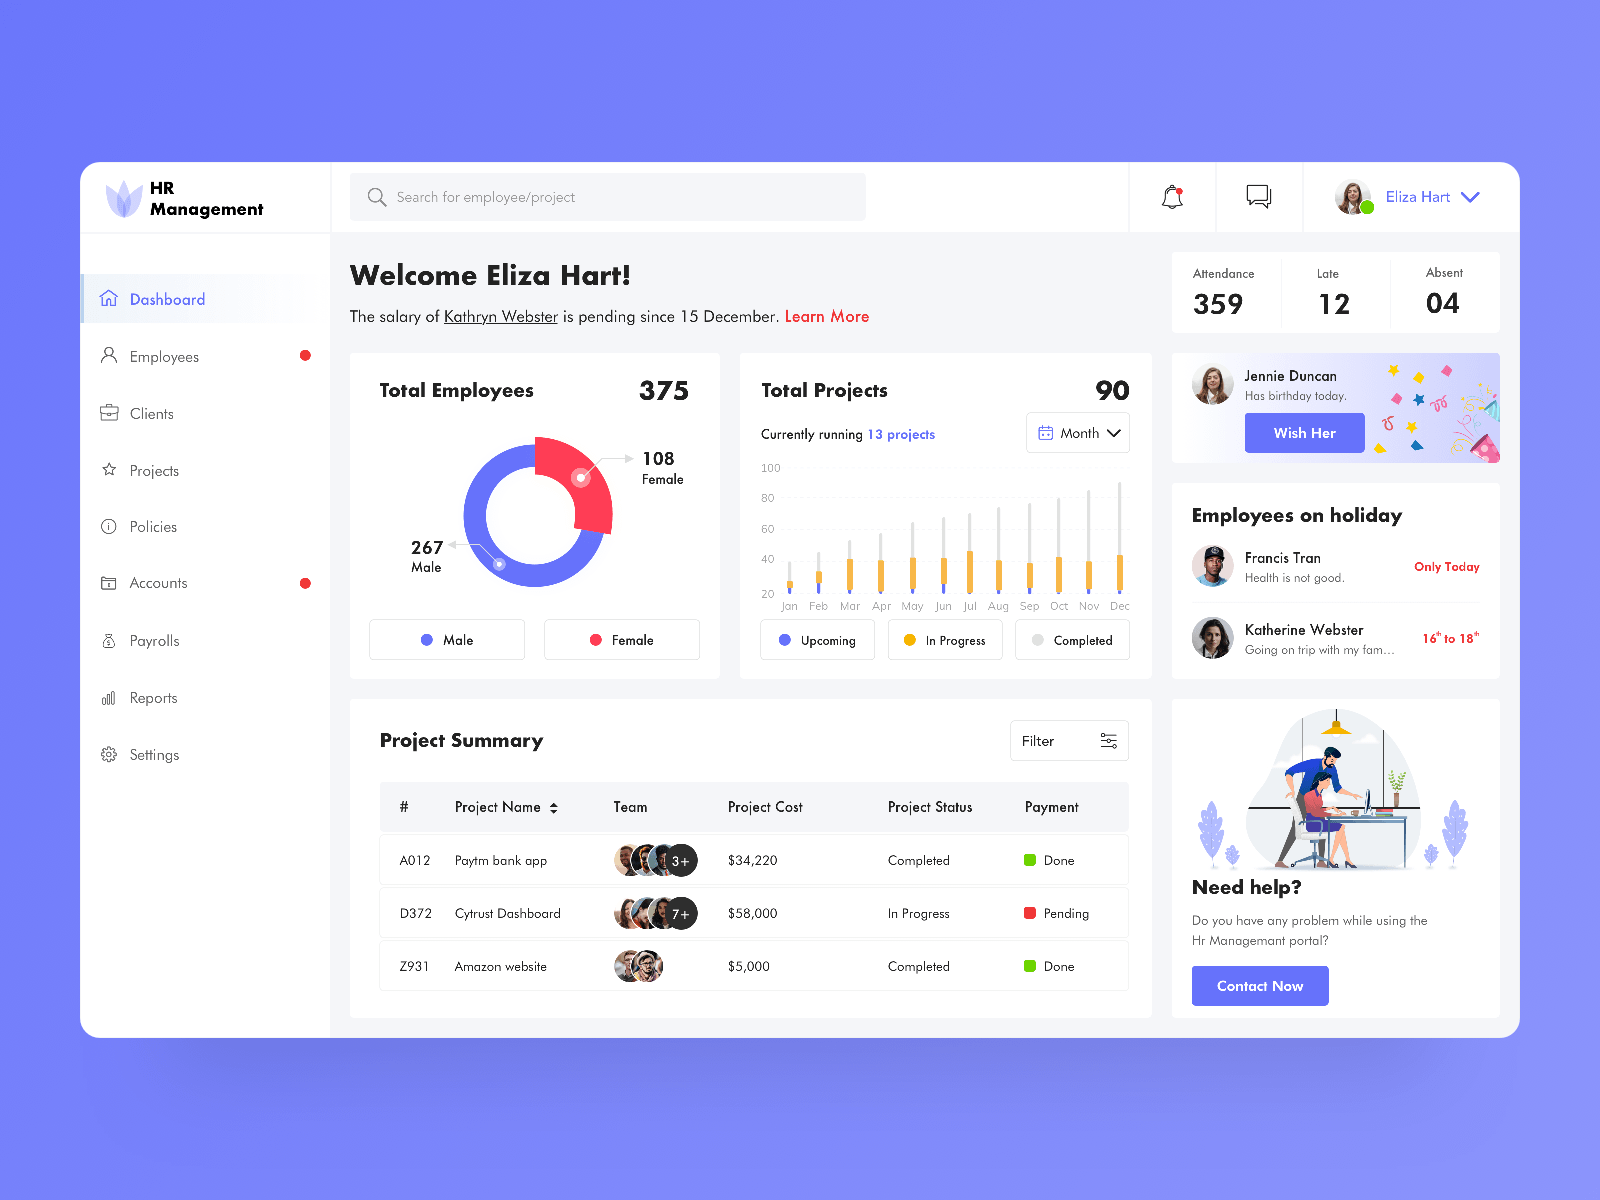 HR Management Dashboard